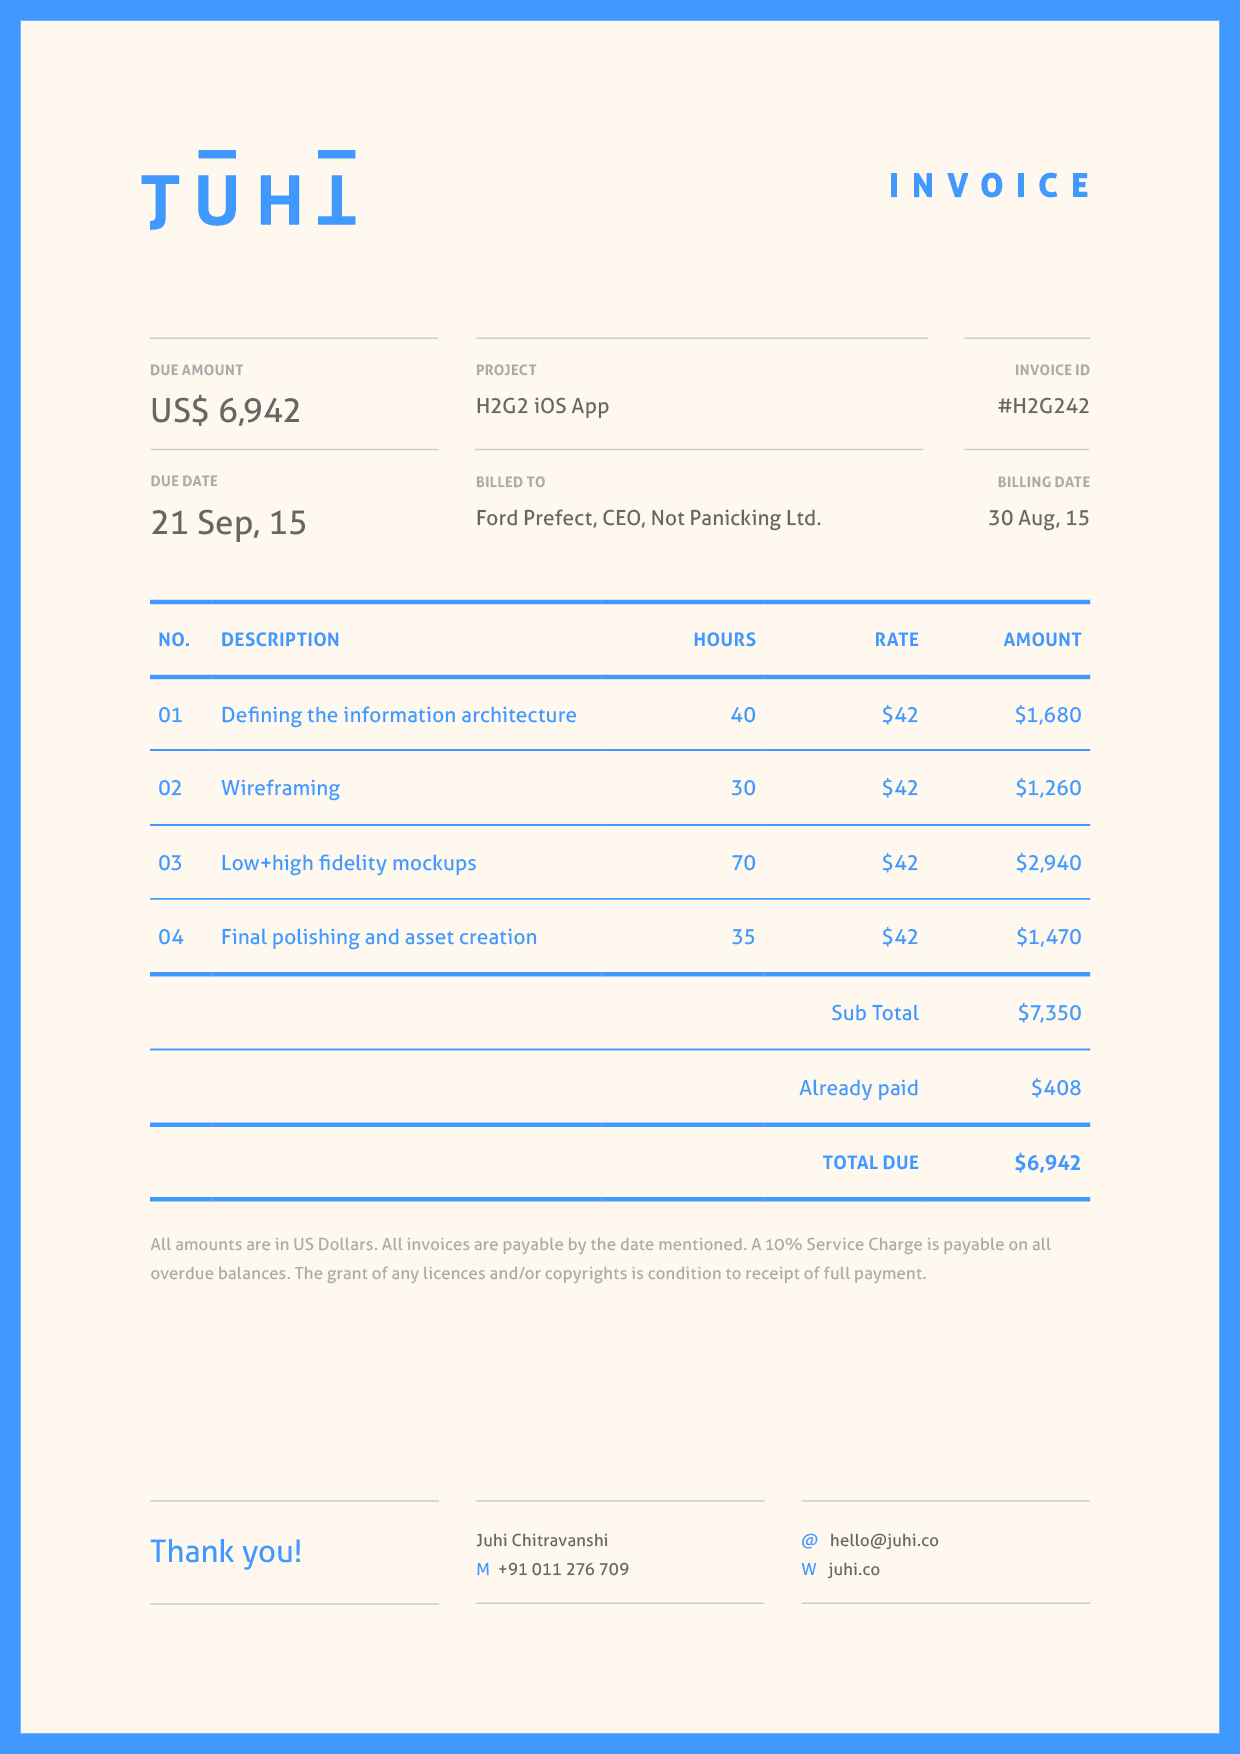 Usdgus  Pleasing Dont Hold Back On Your Invoice  Inspiring Designs  With Likable Invoice By Juhi Chitravanshi Follow With Lovely Invoice Price Car Also Woocommerce Pdf Invoice In Addition New Car Invoice Prices And Quickbooks Invoice As Well As How To Send An Invoice On Paypal Additionally Online Invoices From Inspirationfeedcom With Usdgus  Likable Dont Hold Back On Your Invoice  Inspiring Designs  With Lovely Invoice By Juhi Chitravanshi Follow And Pleasing Invoice Price Car Also Woocommerce Pdf Invoice In Addition New Car Invoice Prices From Inspirationfeedcom